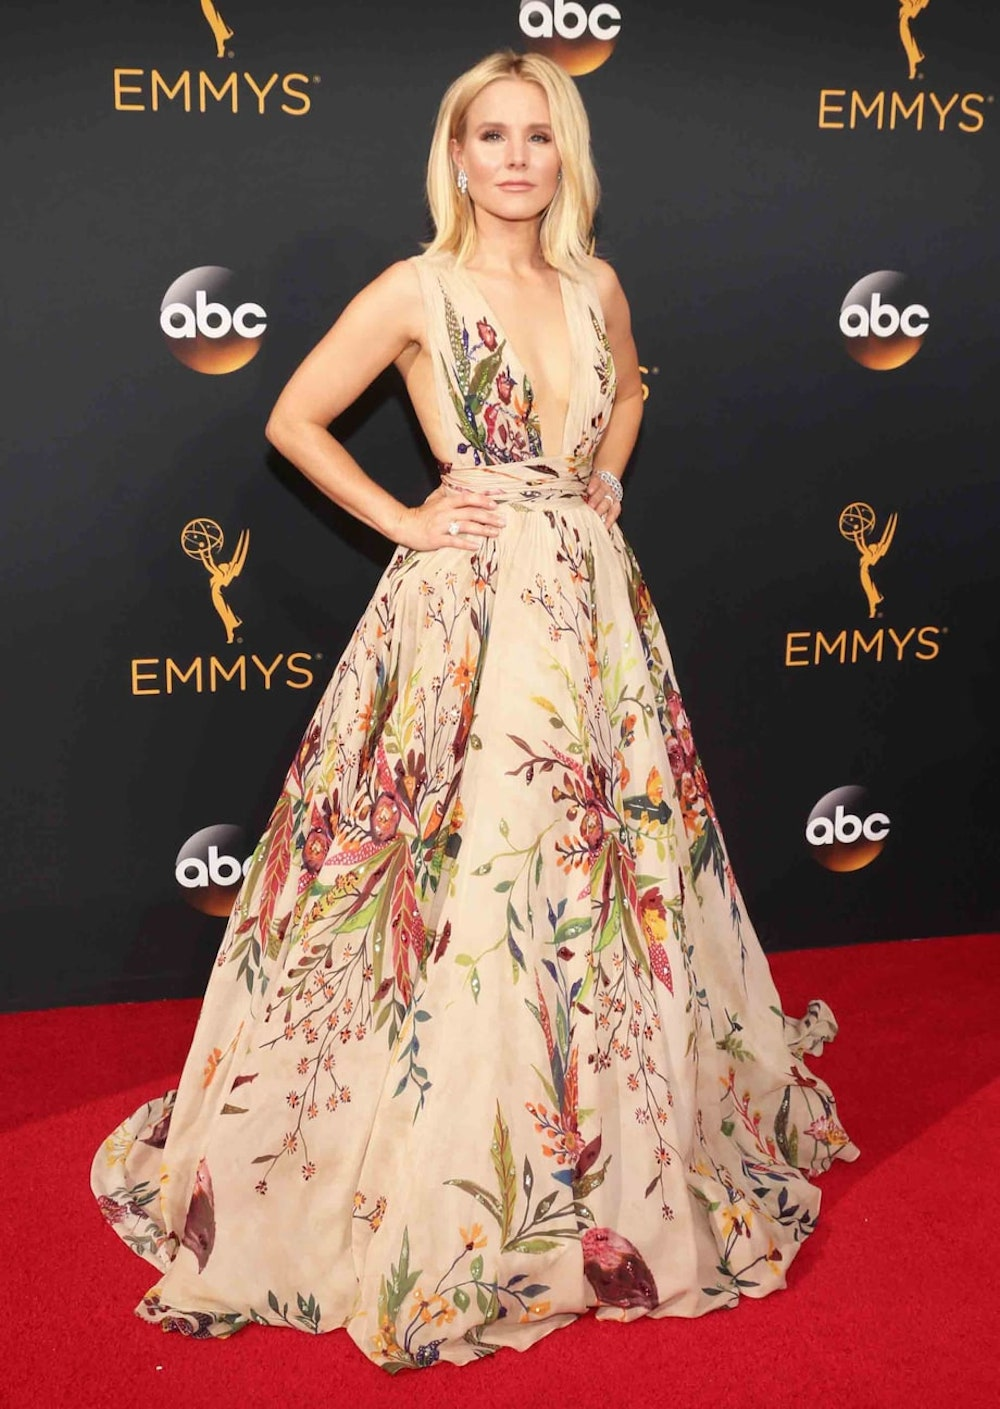 Kristen Bell in Zuhair Murad at the 2016 Emmy Awards. Image courtesy of Tod Williamson/Getty.